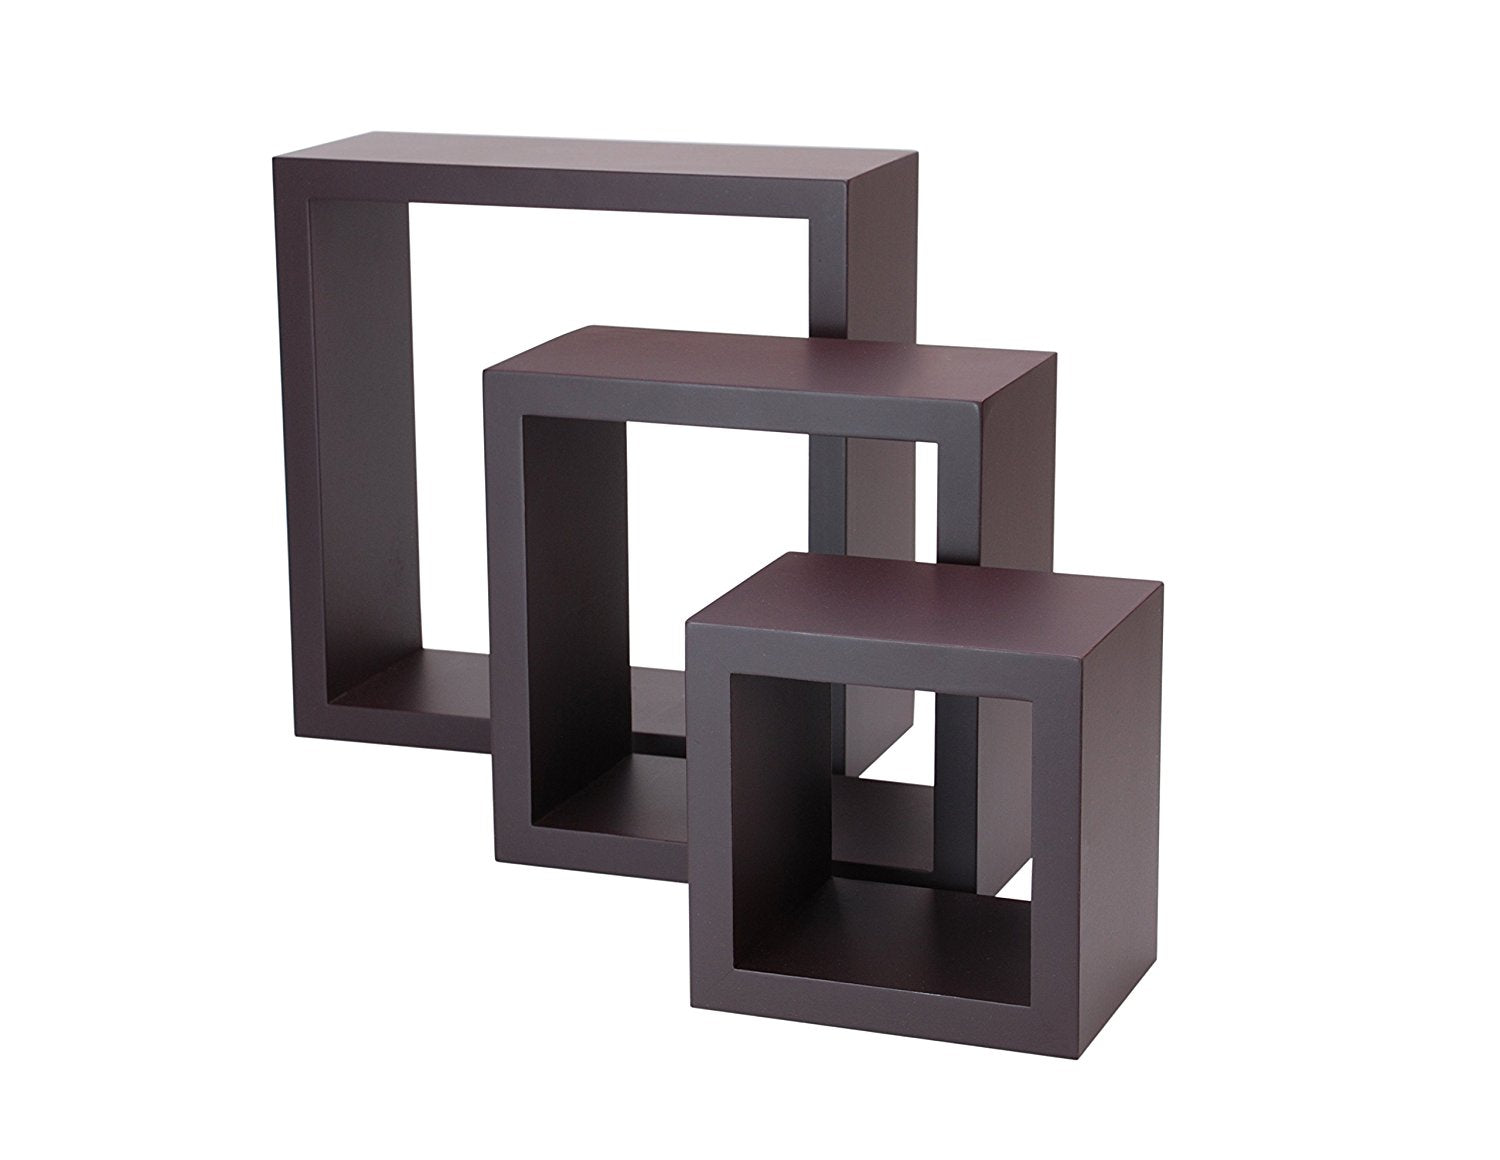 kiera grace cubbi contemporary floating wall shelves 5 by 5 inch 7 by 7 inch 9 by 9 inch black set of 3